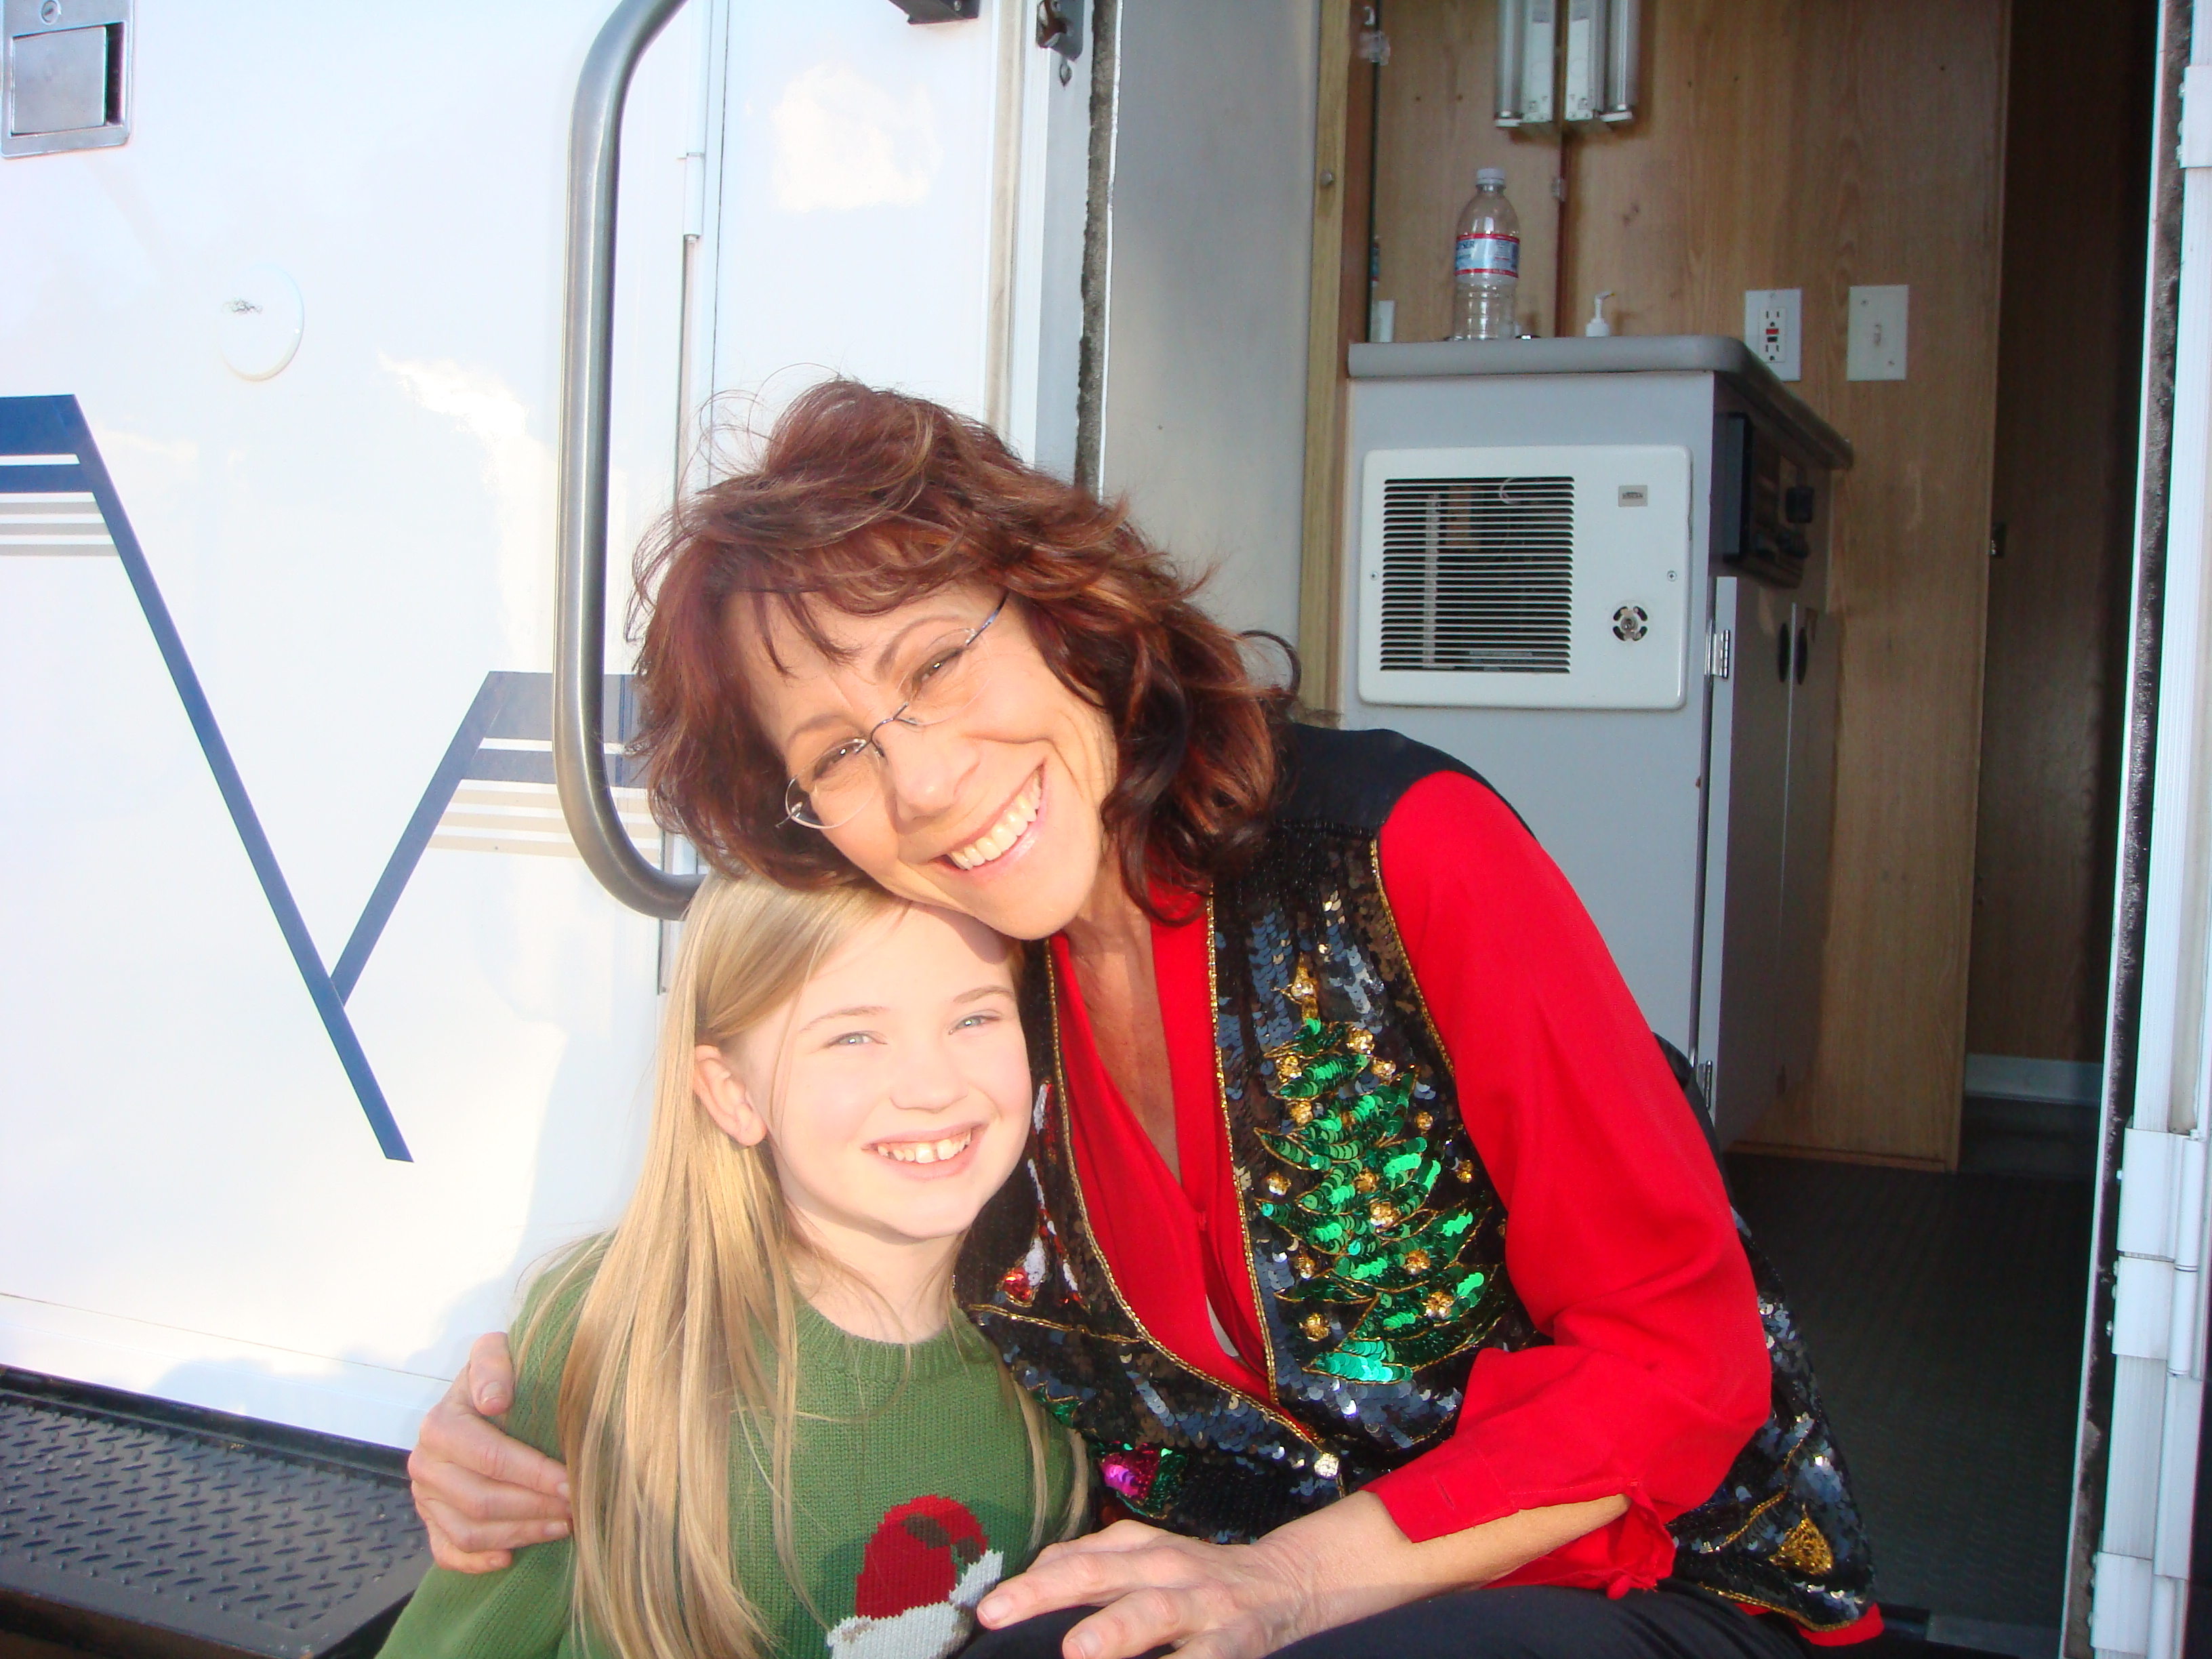 Sierra on the set of The Dog Who Saved Christmas with Mindy Sterling